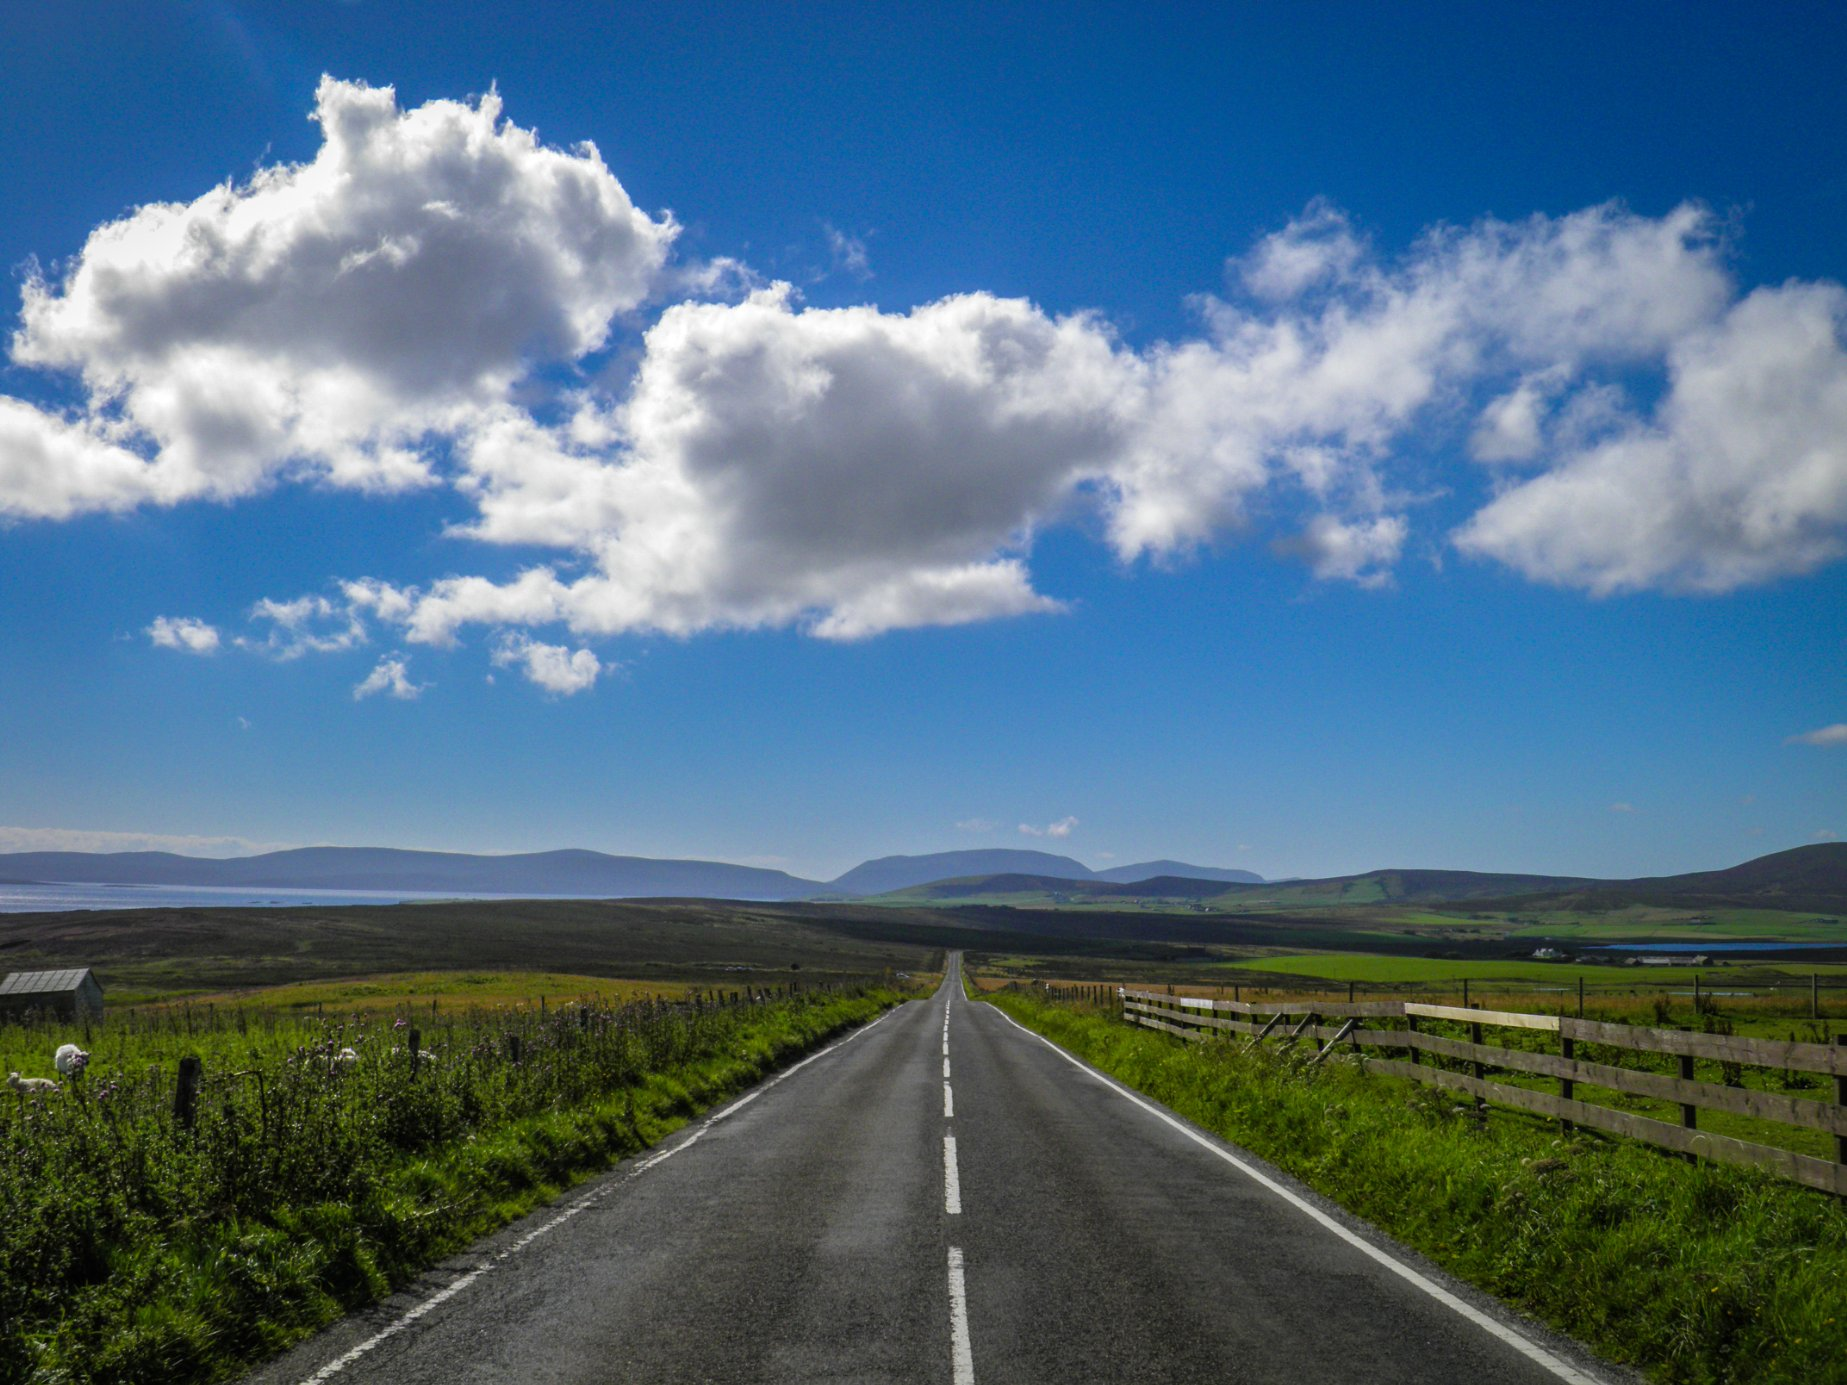 The view towards Hoy - image by Robert Towns